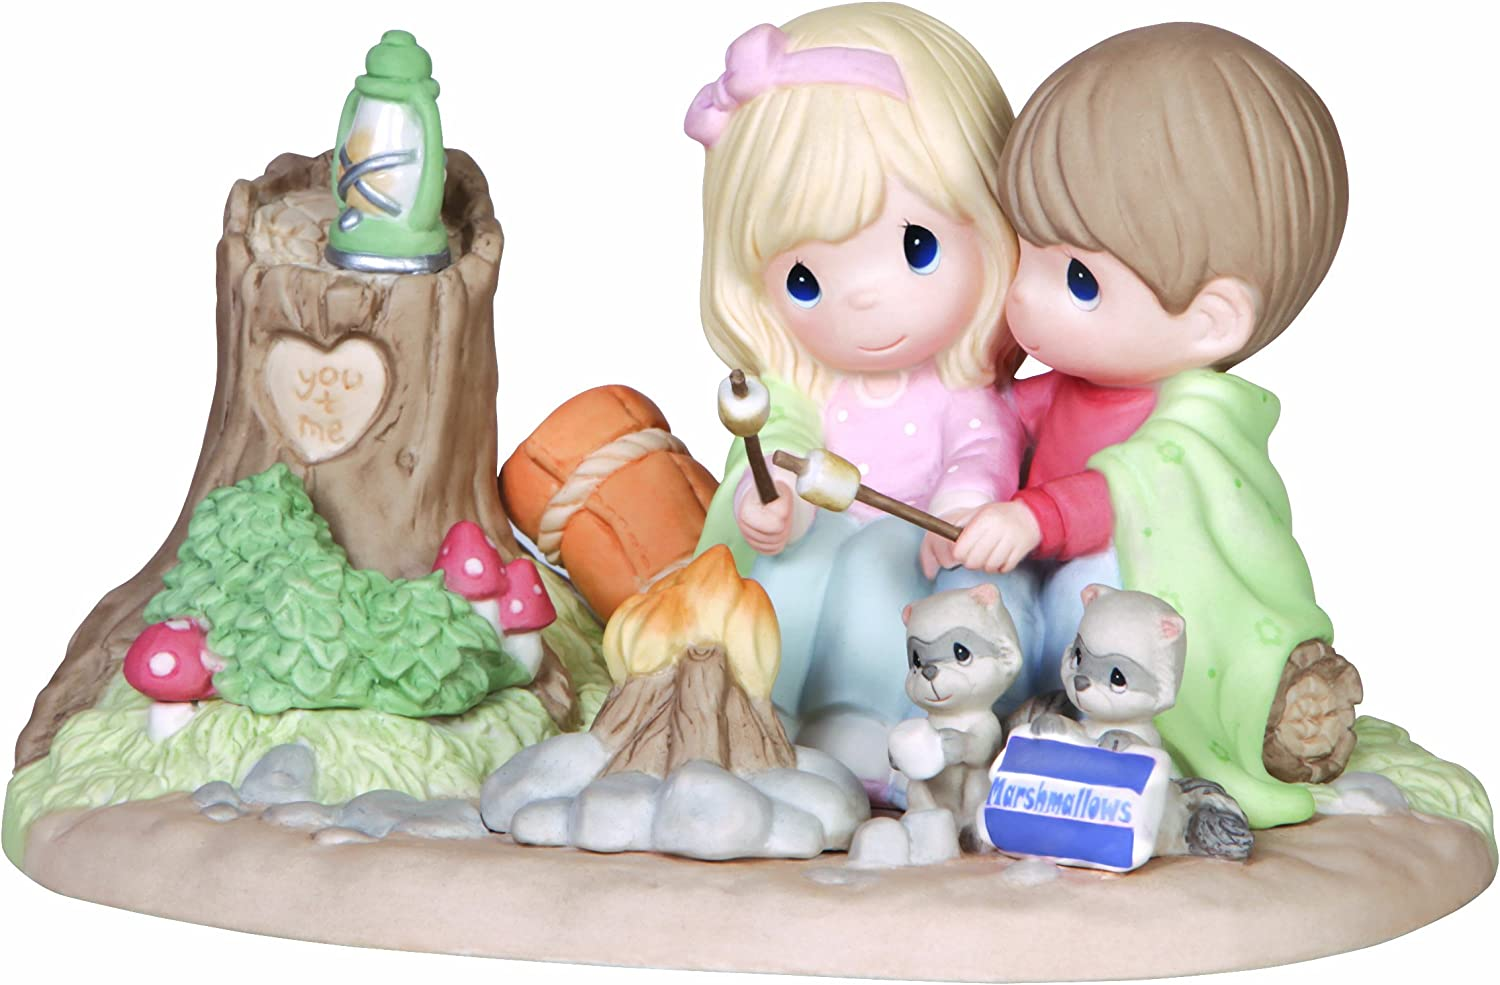 Precious Moments, You Warm My Heart, Bisque Porcelain Sculpture, Limited Edition, 141047